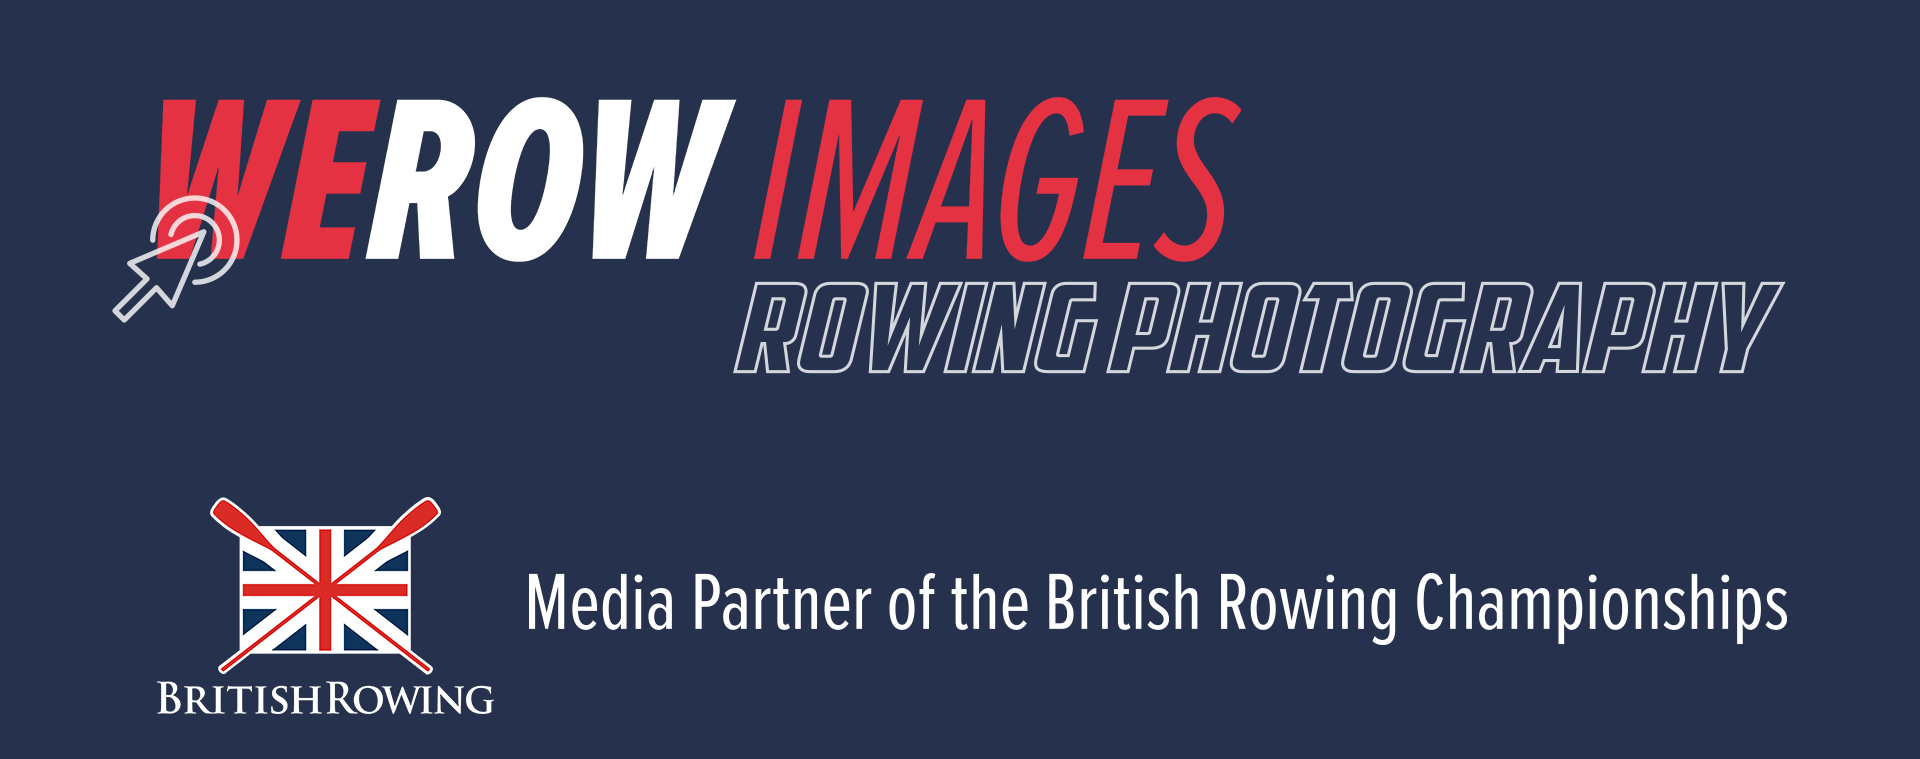 Rowing photography and images